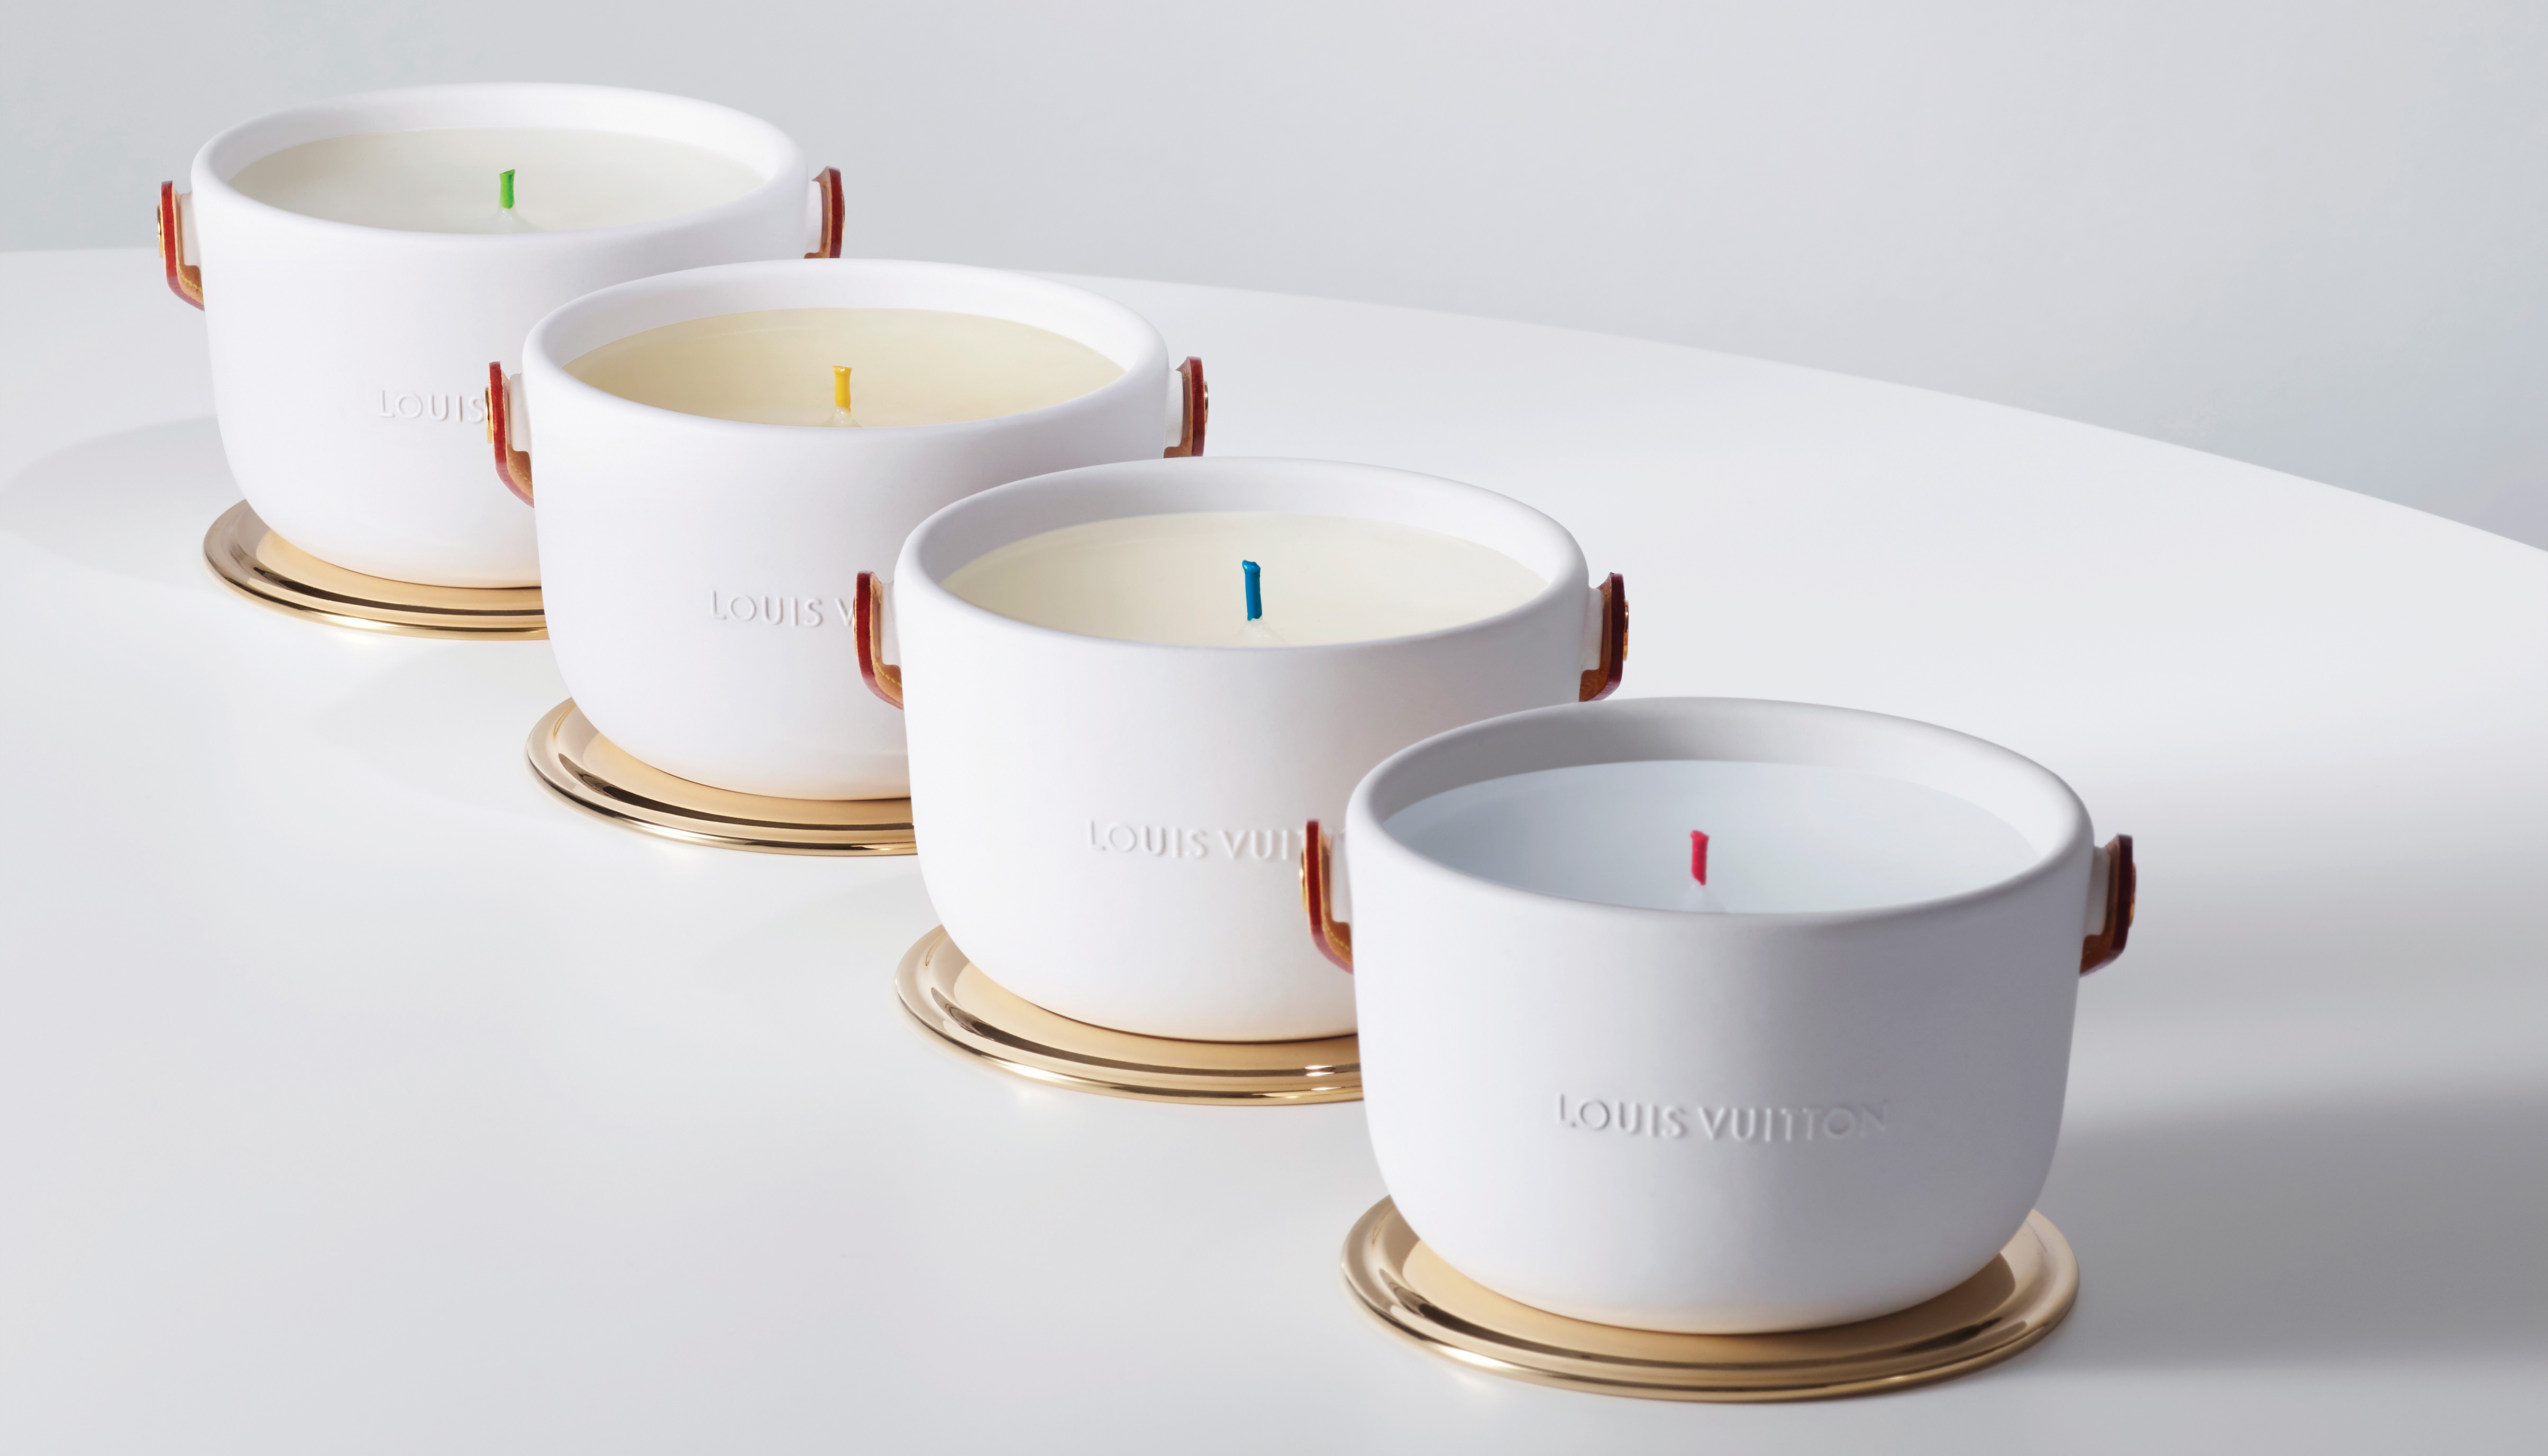 Louis Vuitton S New Candles Are So Minimal Yet You Won T Believe All